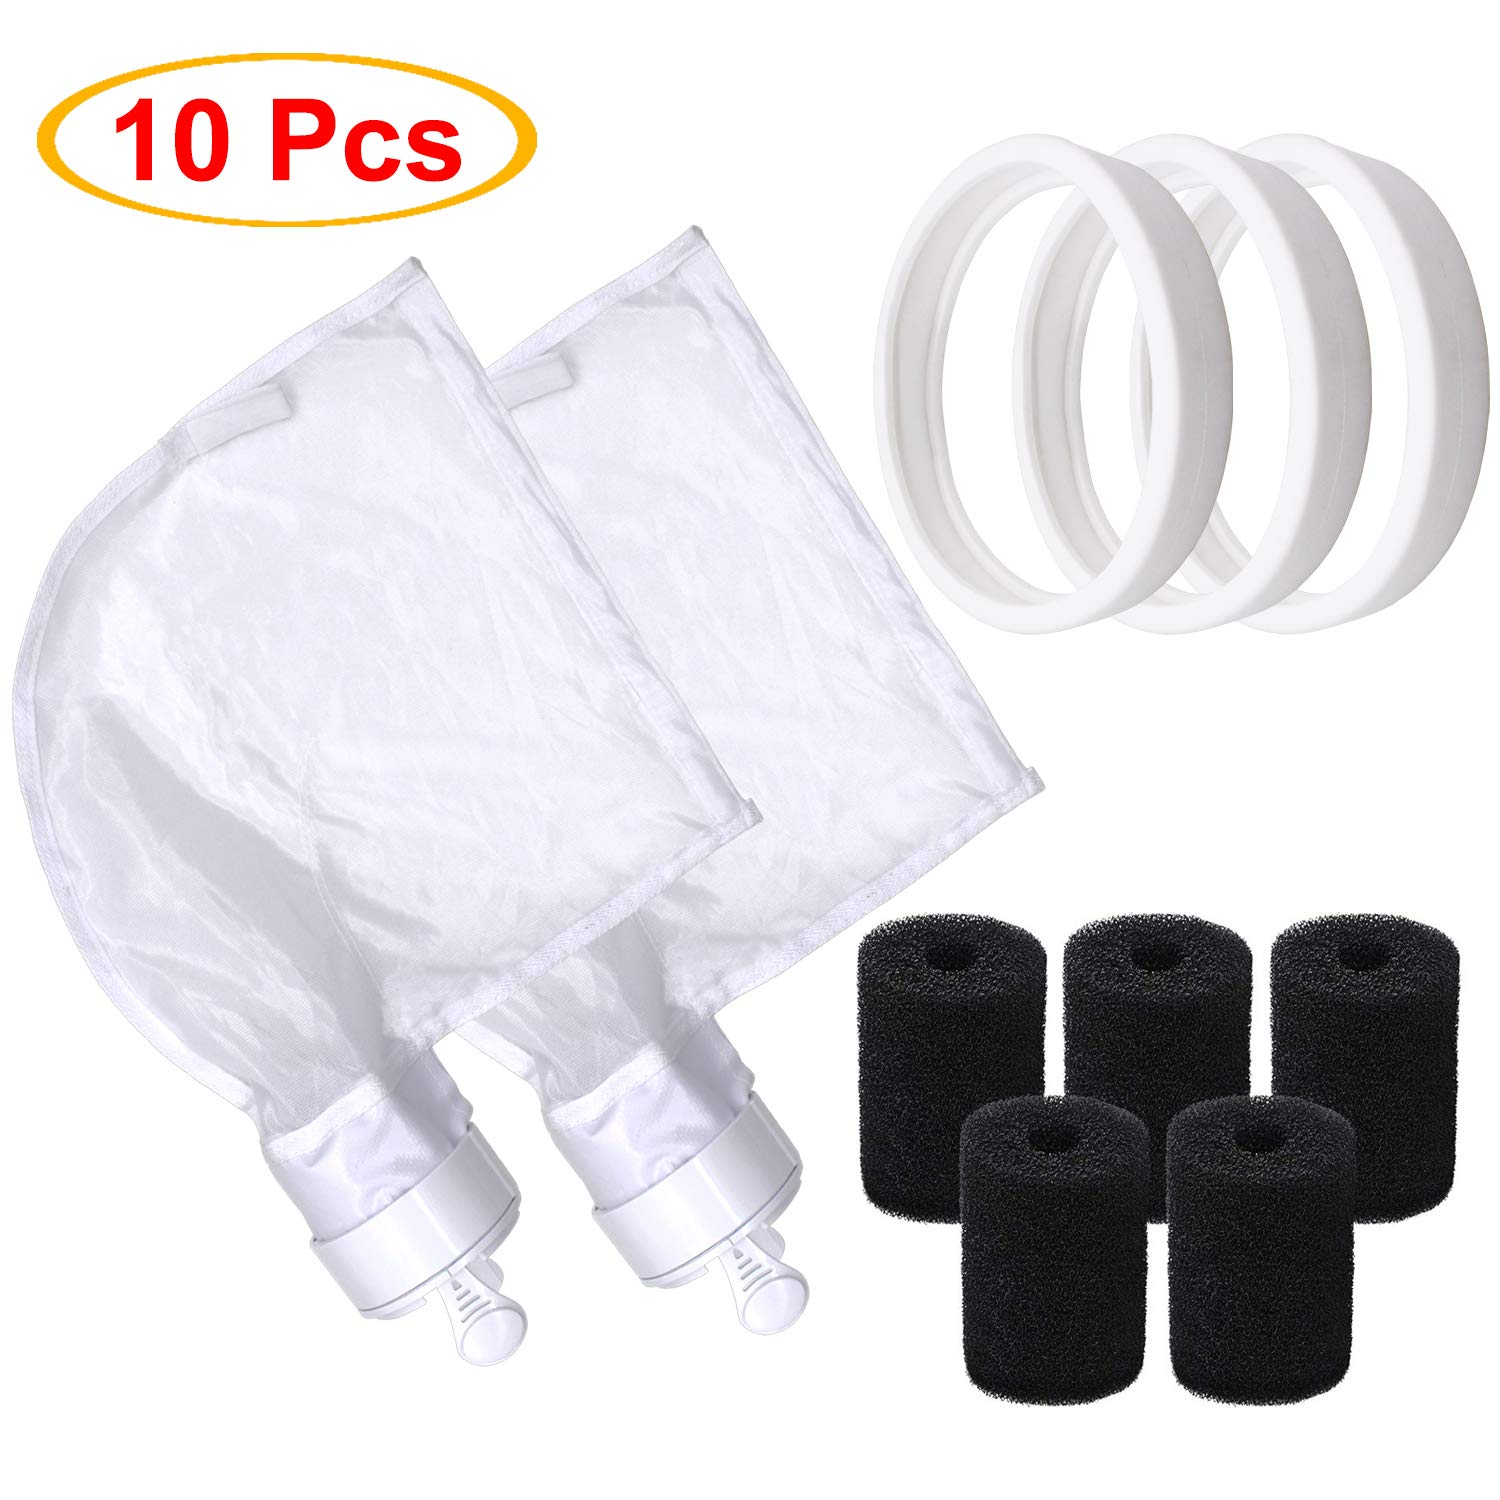 S-Union Pool Cleaner Parts Replacement for Polaris, 2 pack 280 all purpose bag, 3 pack Pool Cleaner All Purpose Tire, 5 pack Sweep Hose Scrubber Replace for Polaris 280 Part NO K13 K16 C-10 9-100-3105 by S-Union